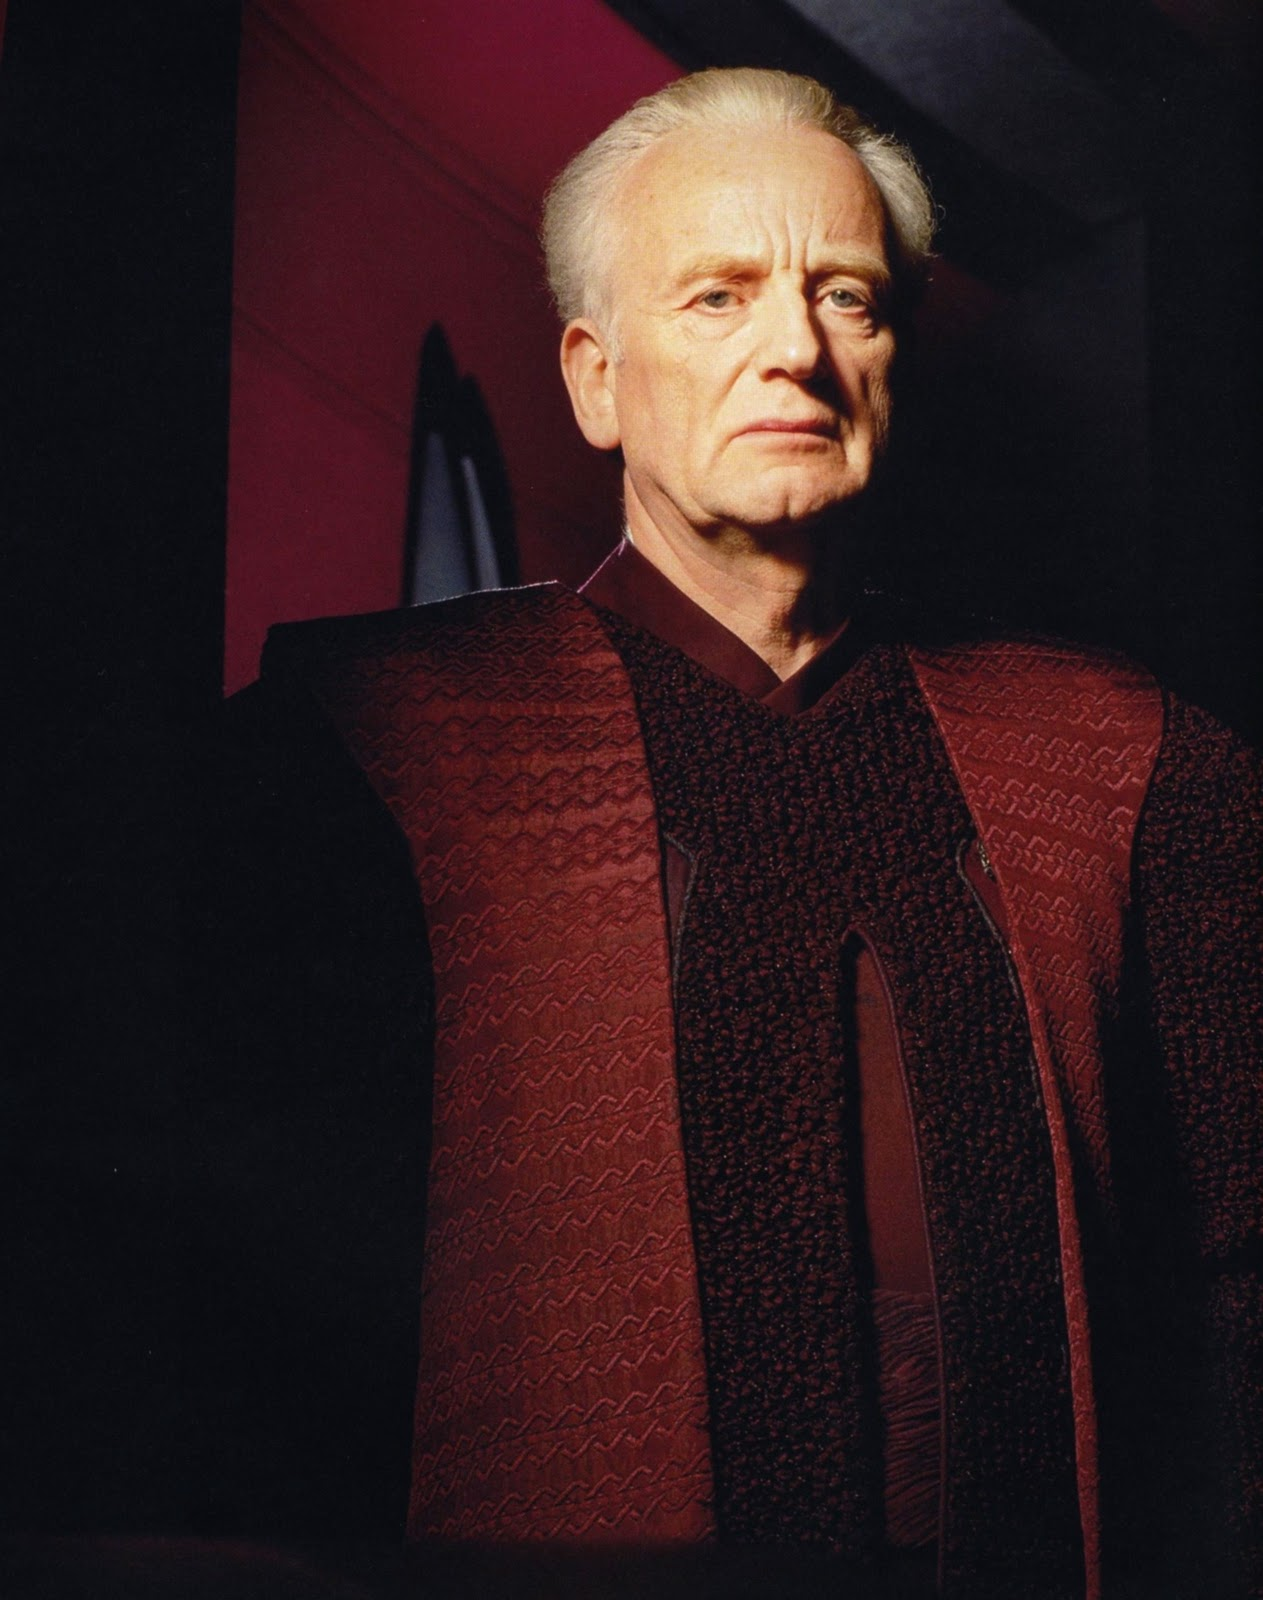 Palpatine Fictupedia Wiki Fandom Powered By Wikia